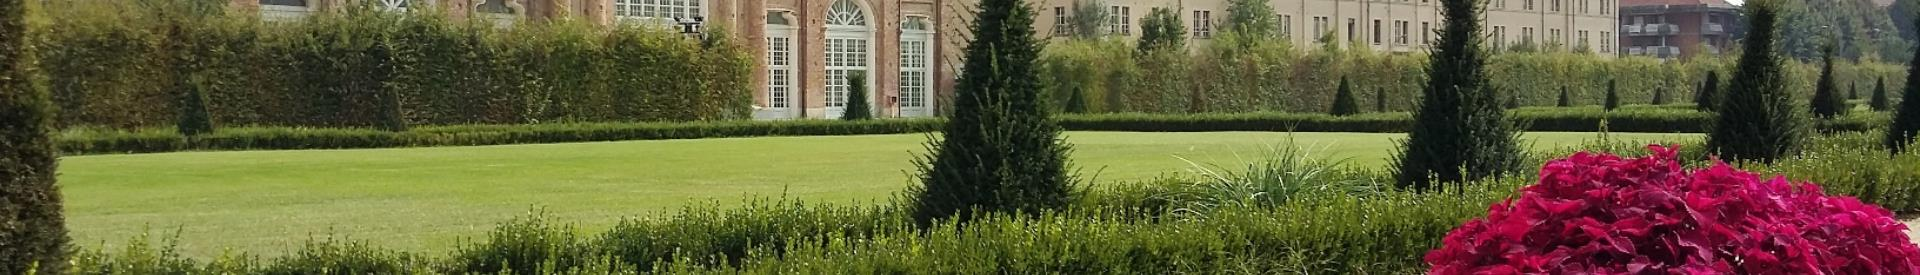 The grounds and all the beauty of the Palace of Venaria are waiting for you.